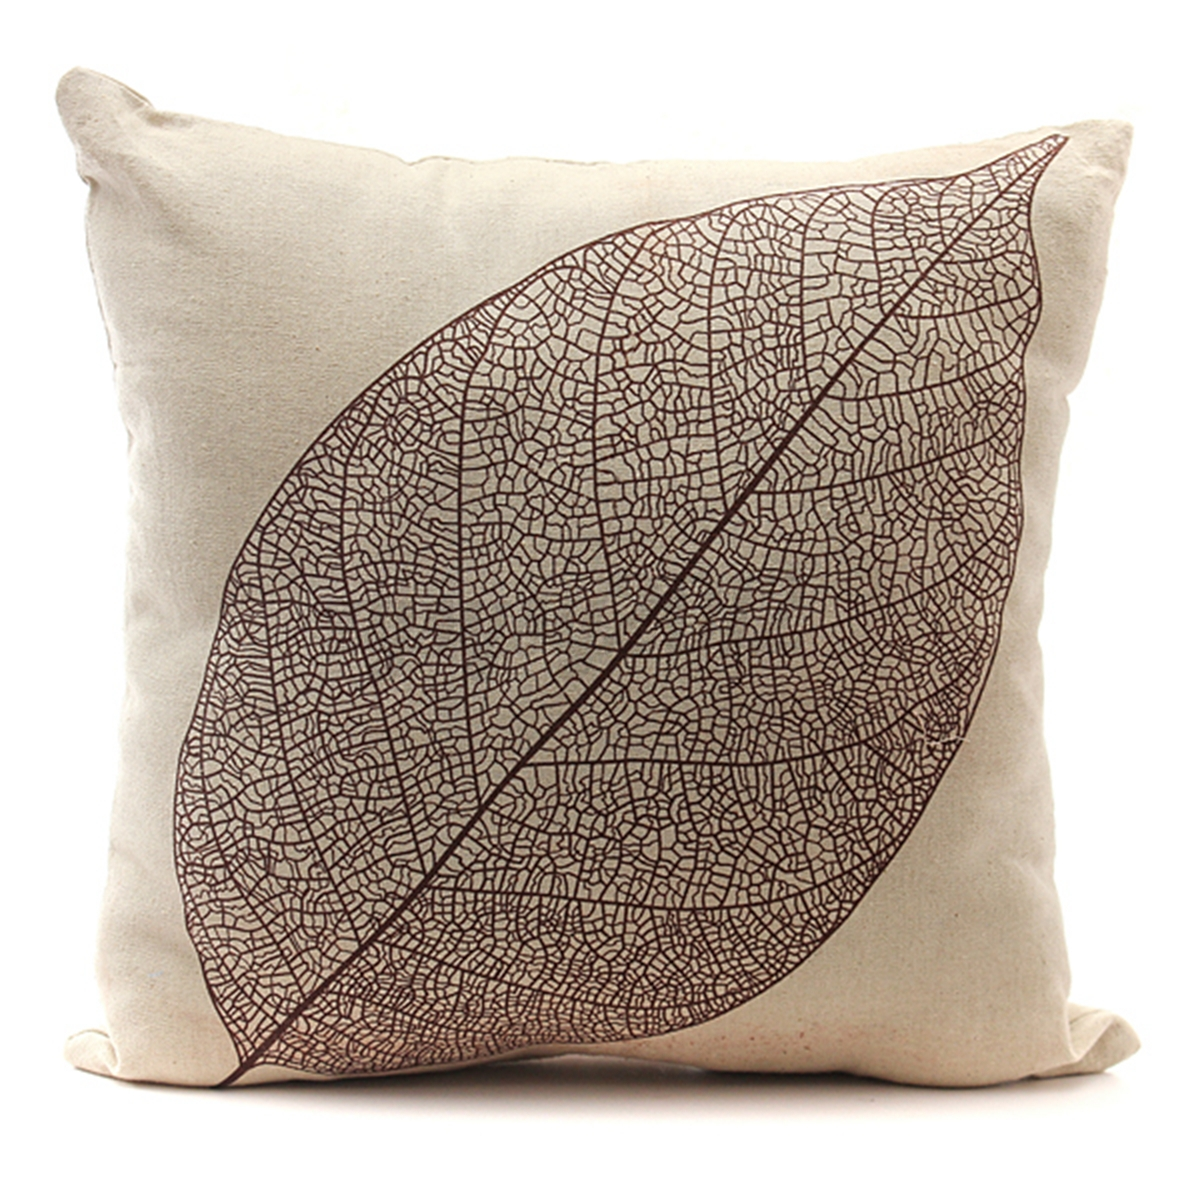 Cotton Linen Forest Leaf Throw Pillow Case Sofa Back Cushion Cover Home Decor eBay